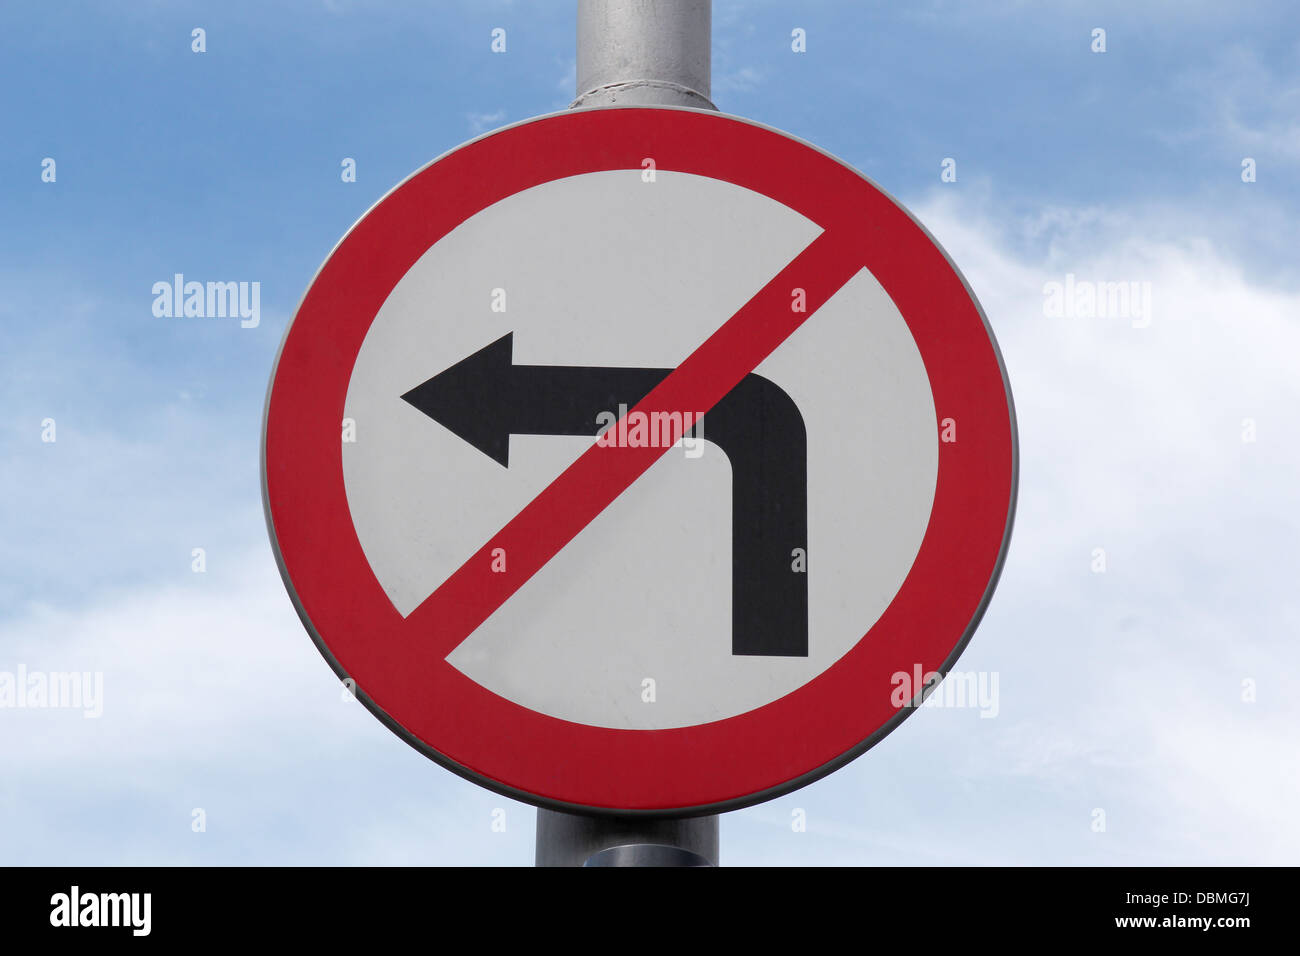 no turn left sign - Stock Image